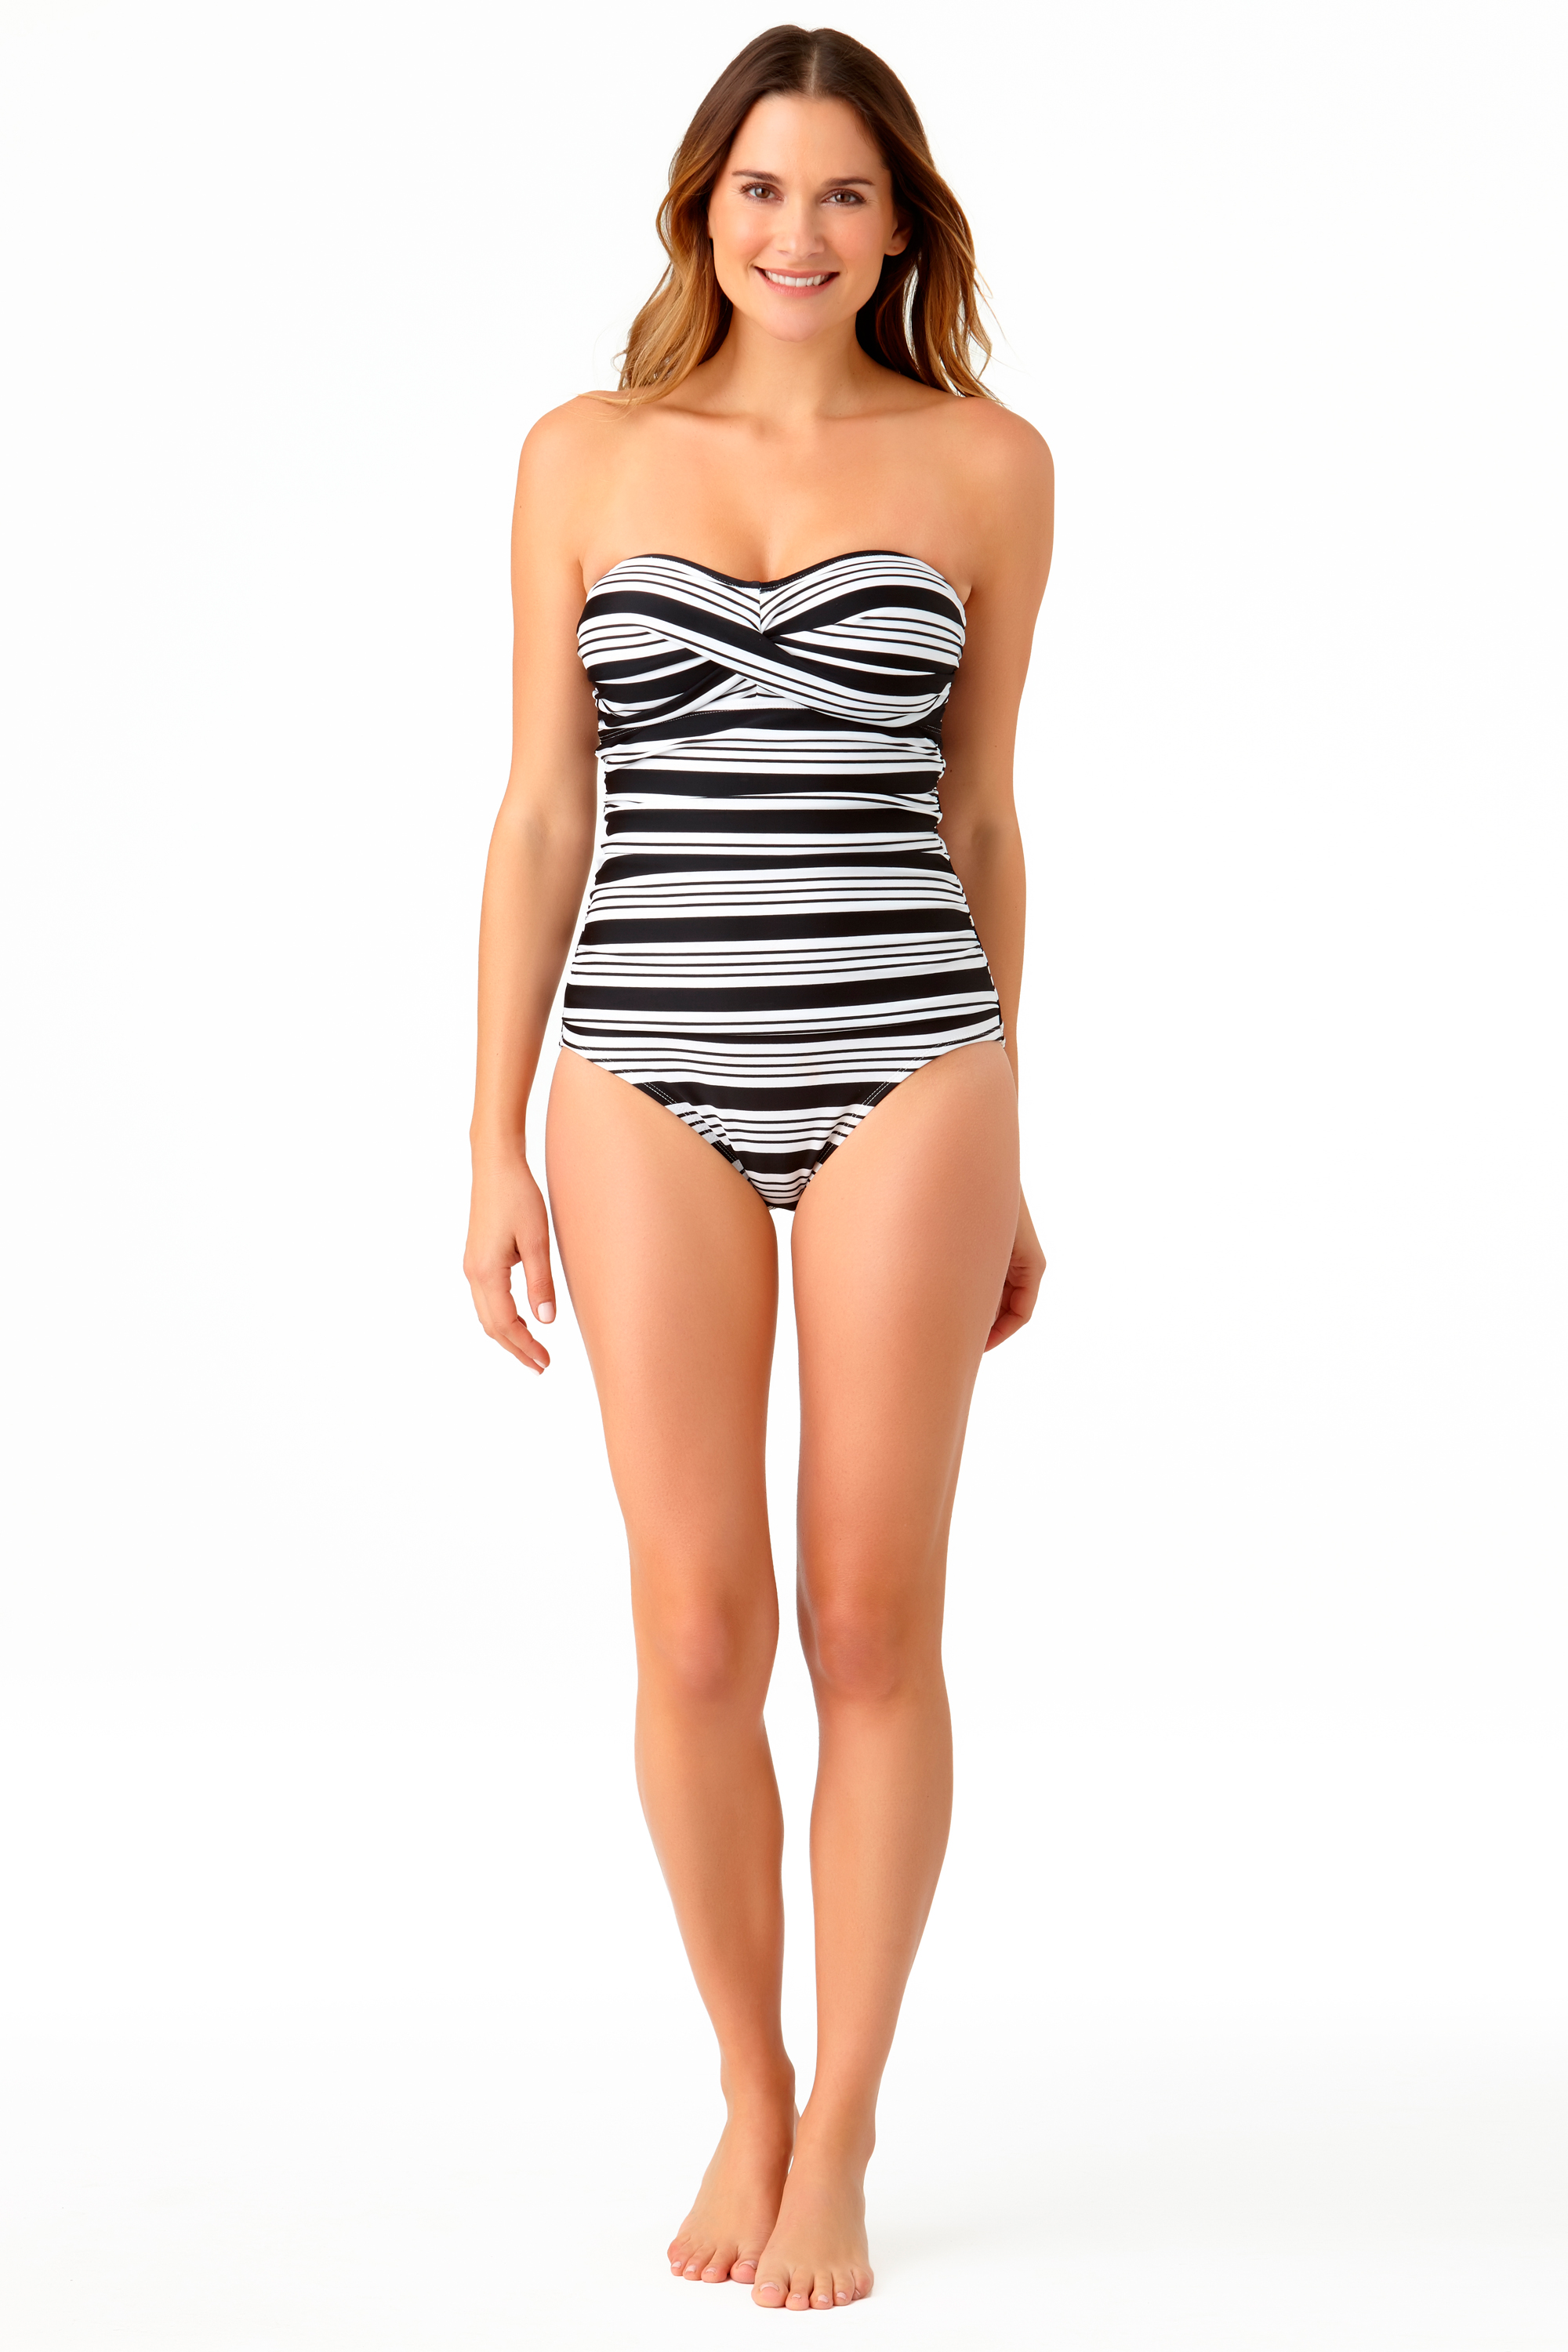 STYLE # CTL27101 - Melbourne Stripe One PieceSOLD OUT